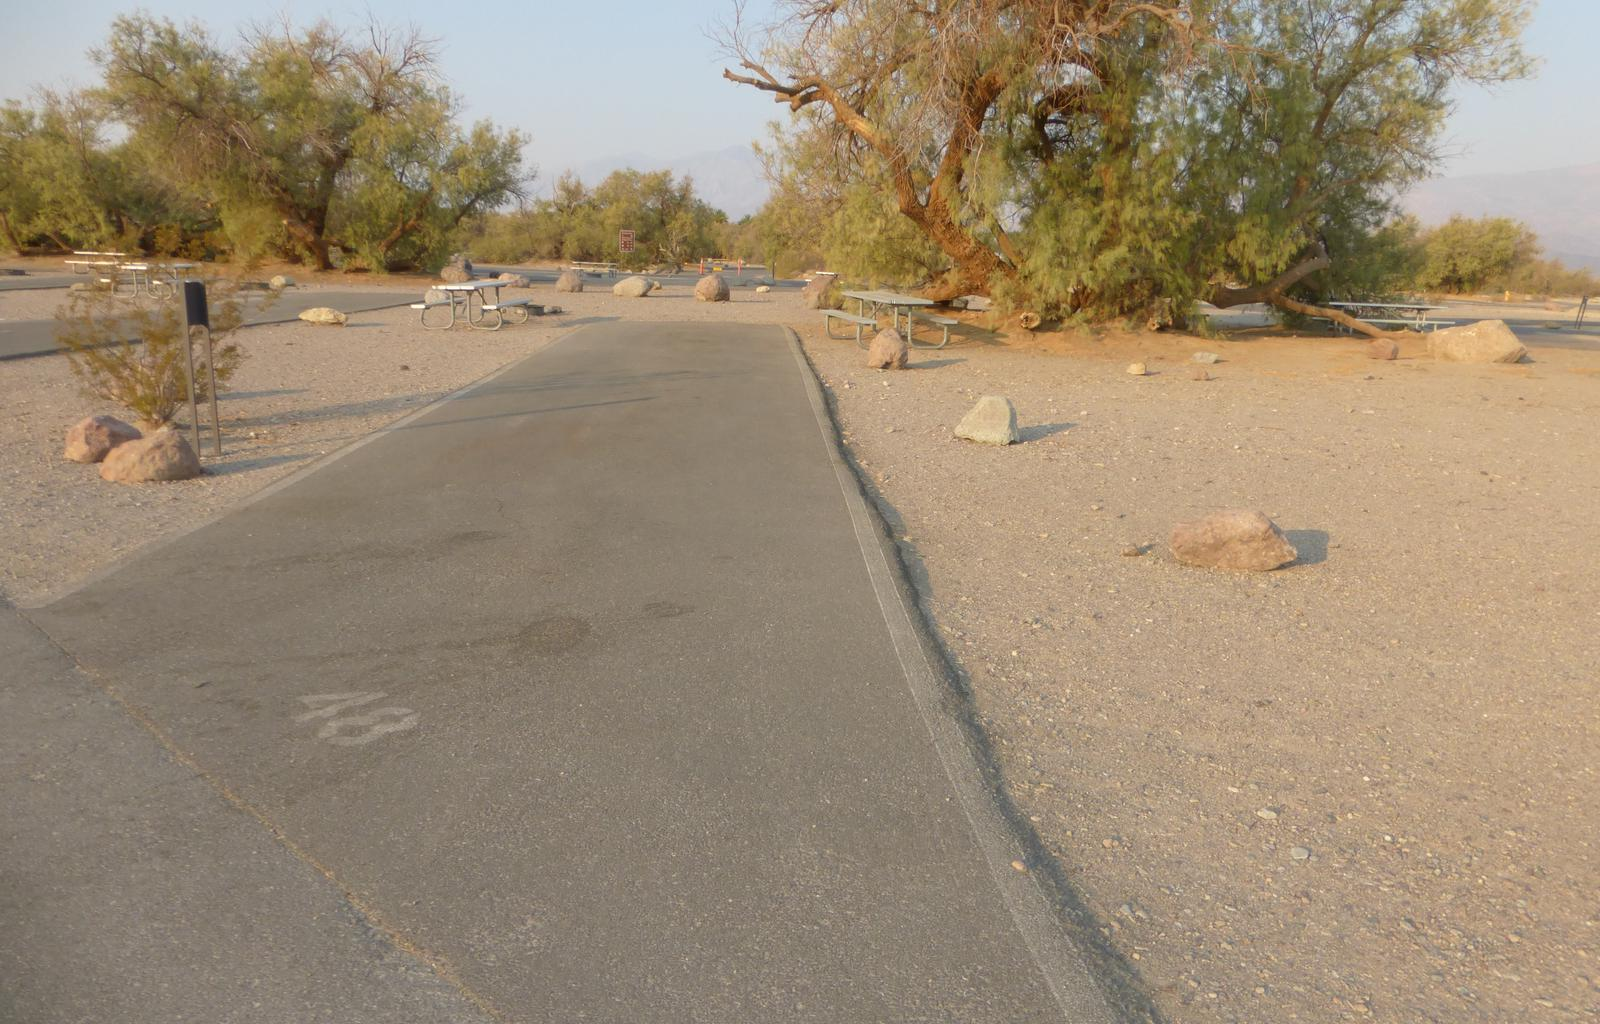 Furnace Creek Campground standard nonelectric site #48 with picnic table and fire ring.